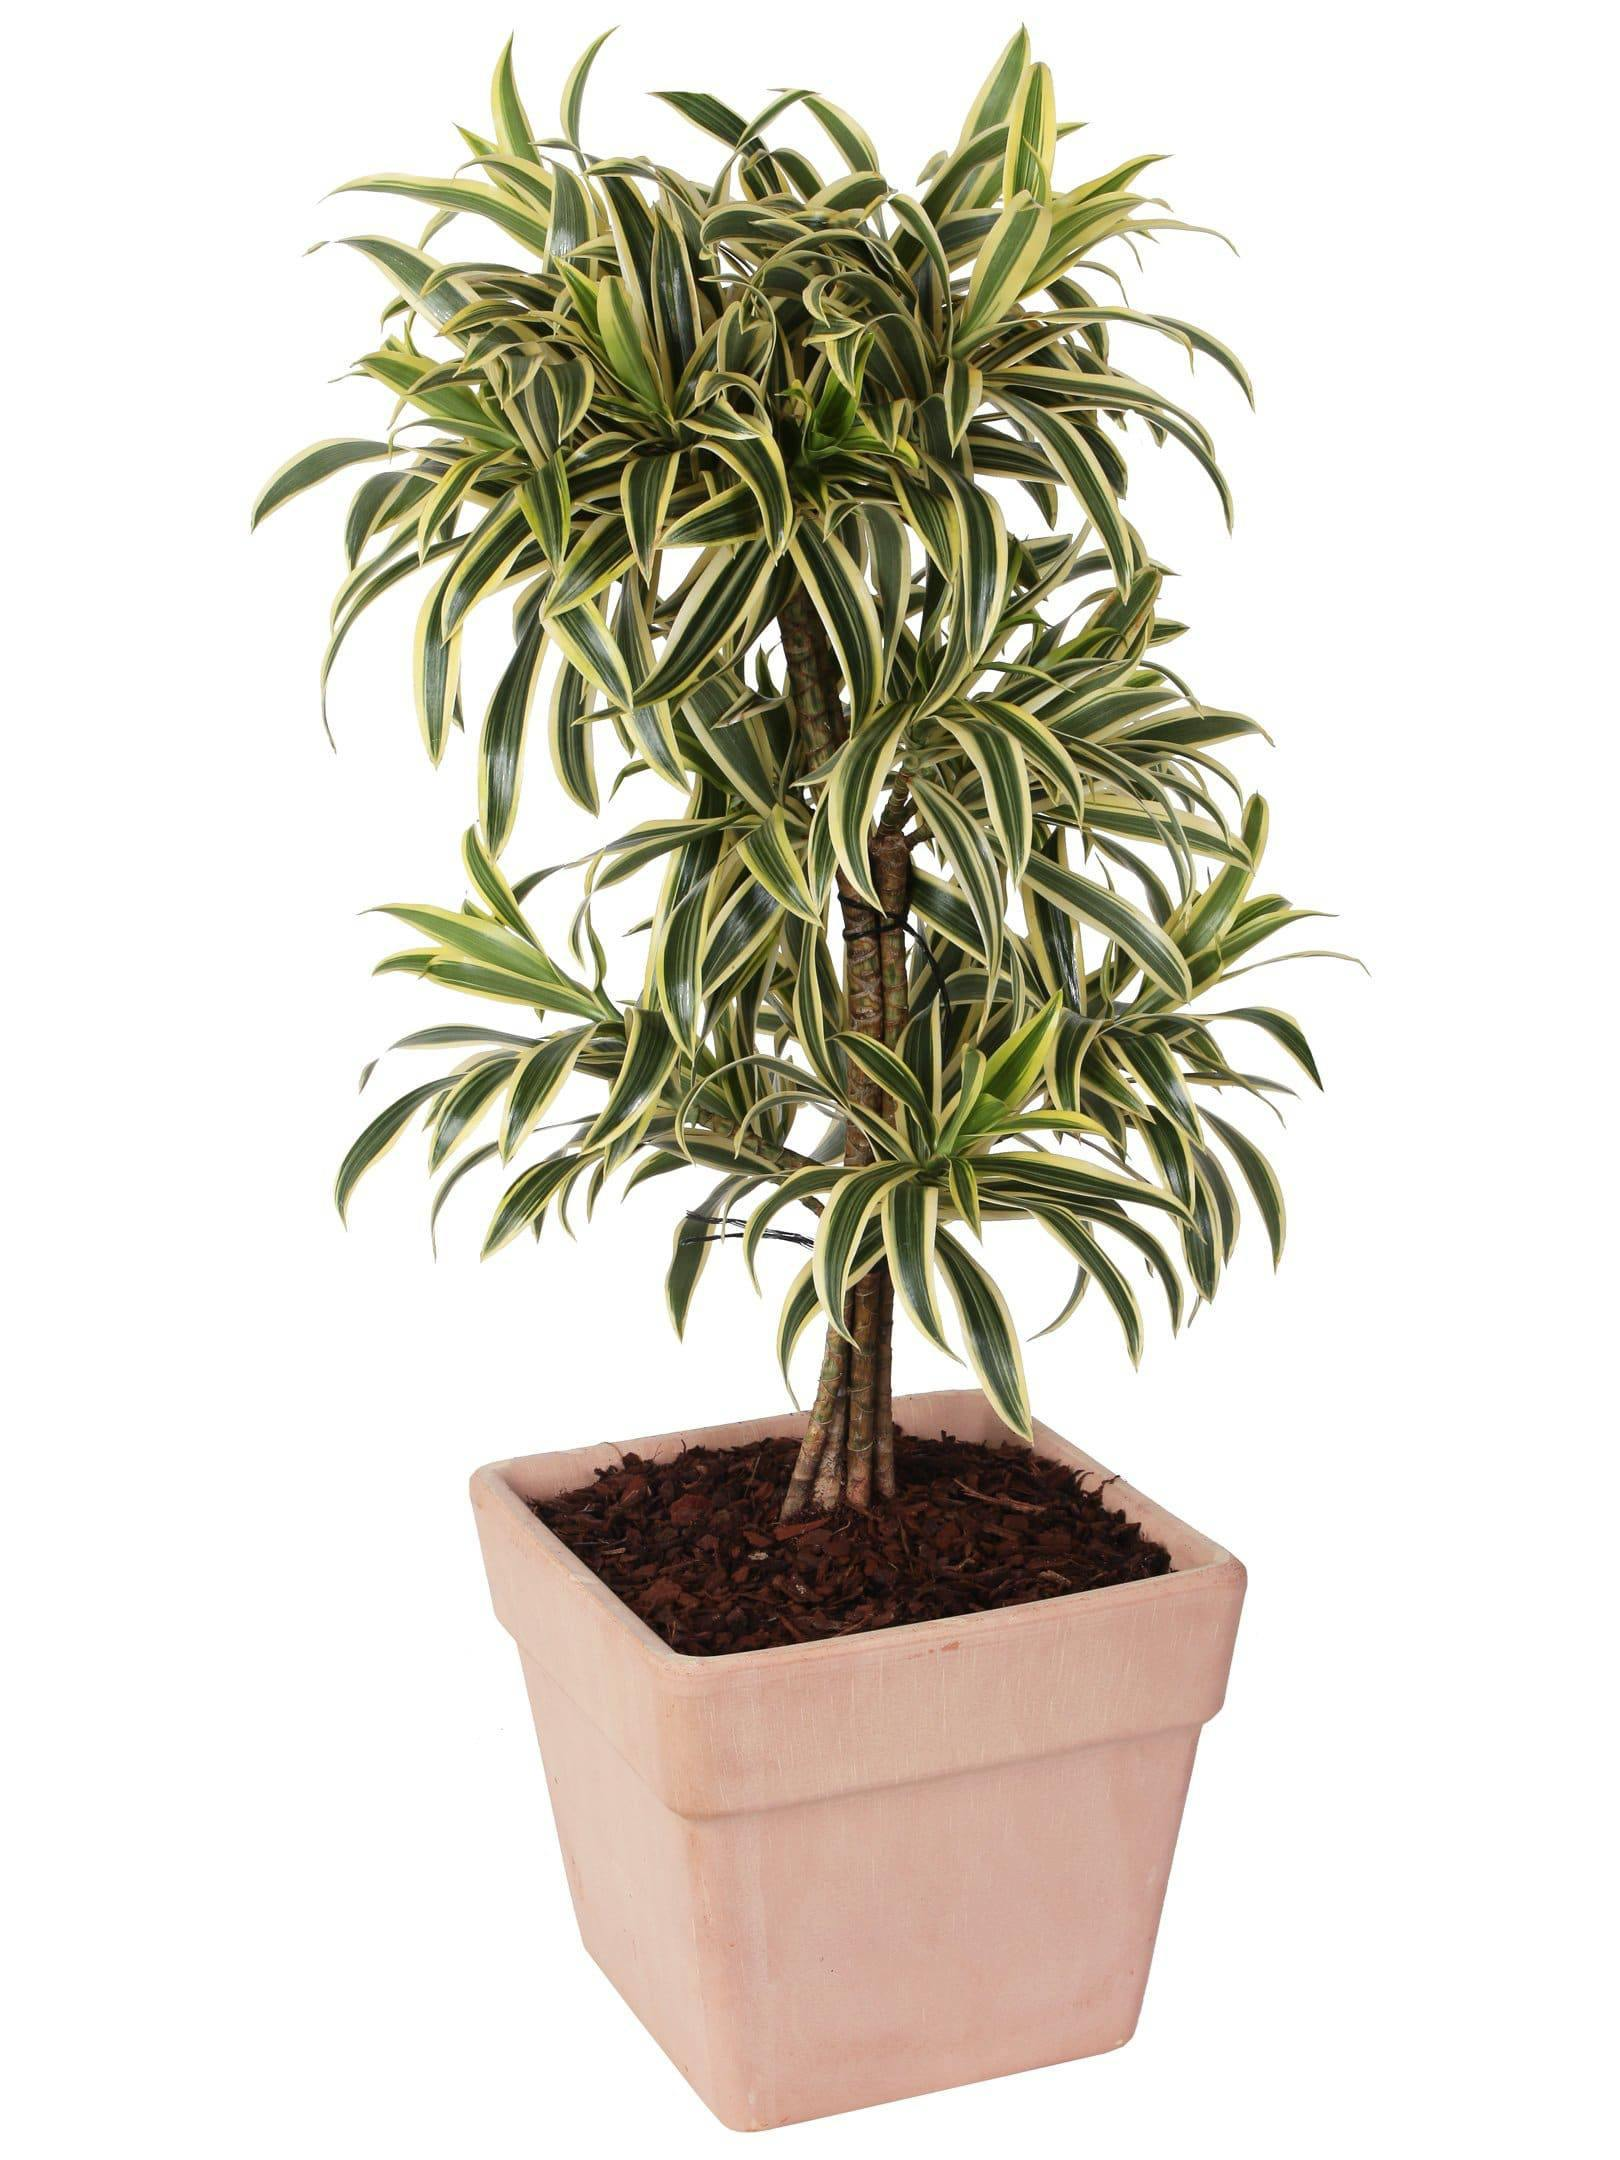 Dracaena Reflexa Pleomele Song of India in terracotta pot height 95/100 cm. -Casita Hermosa